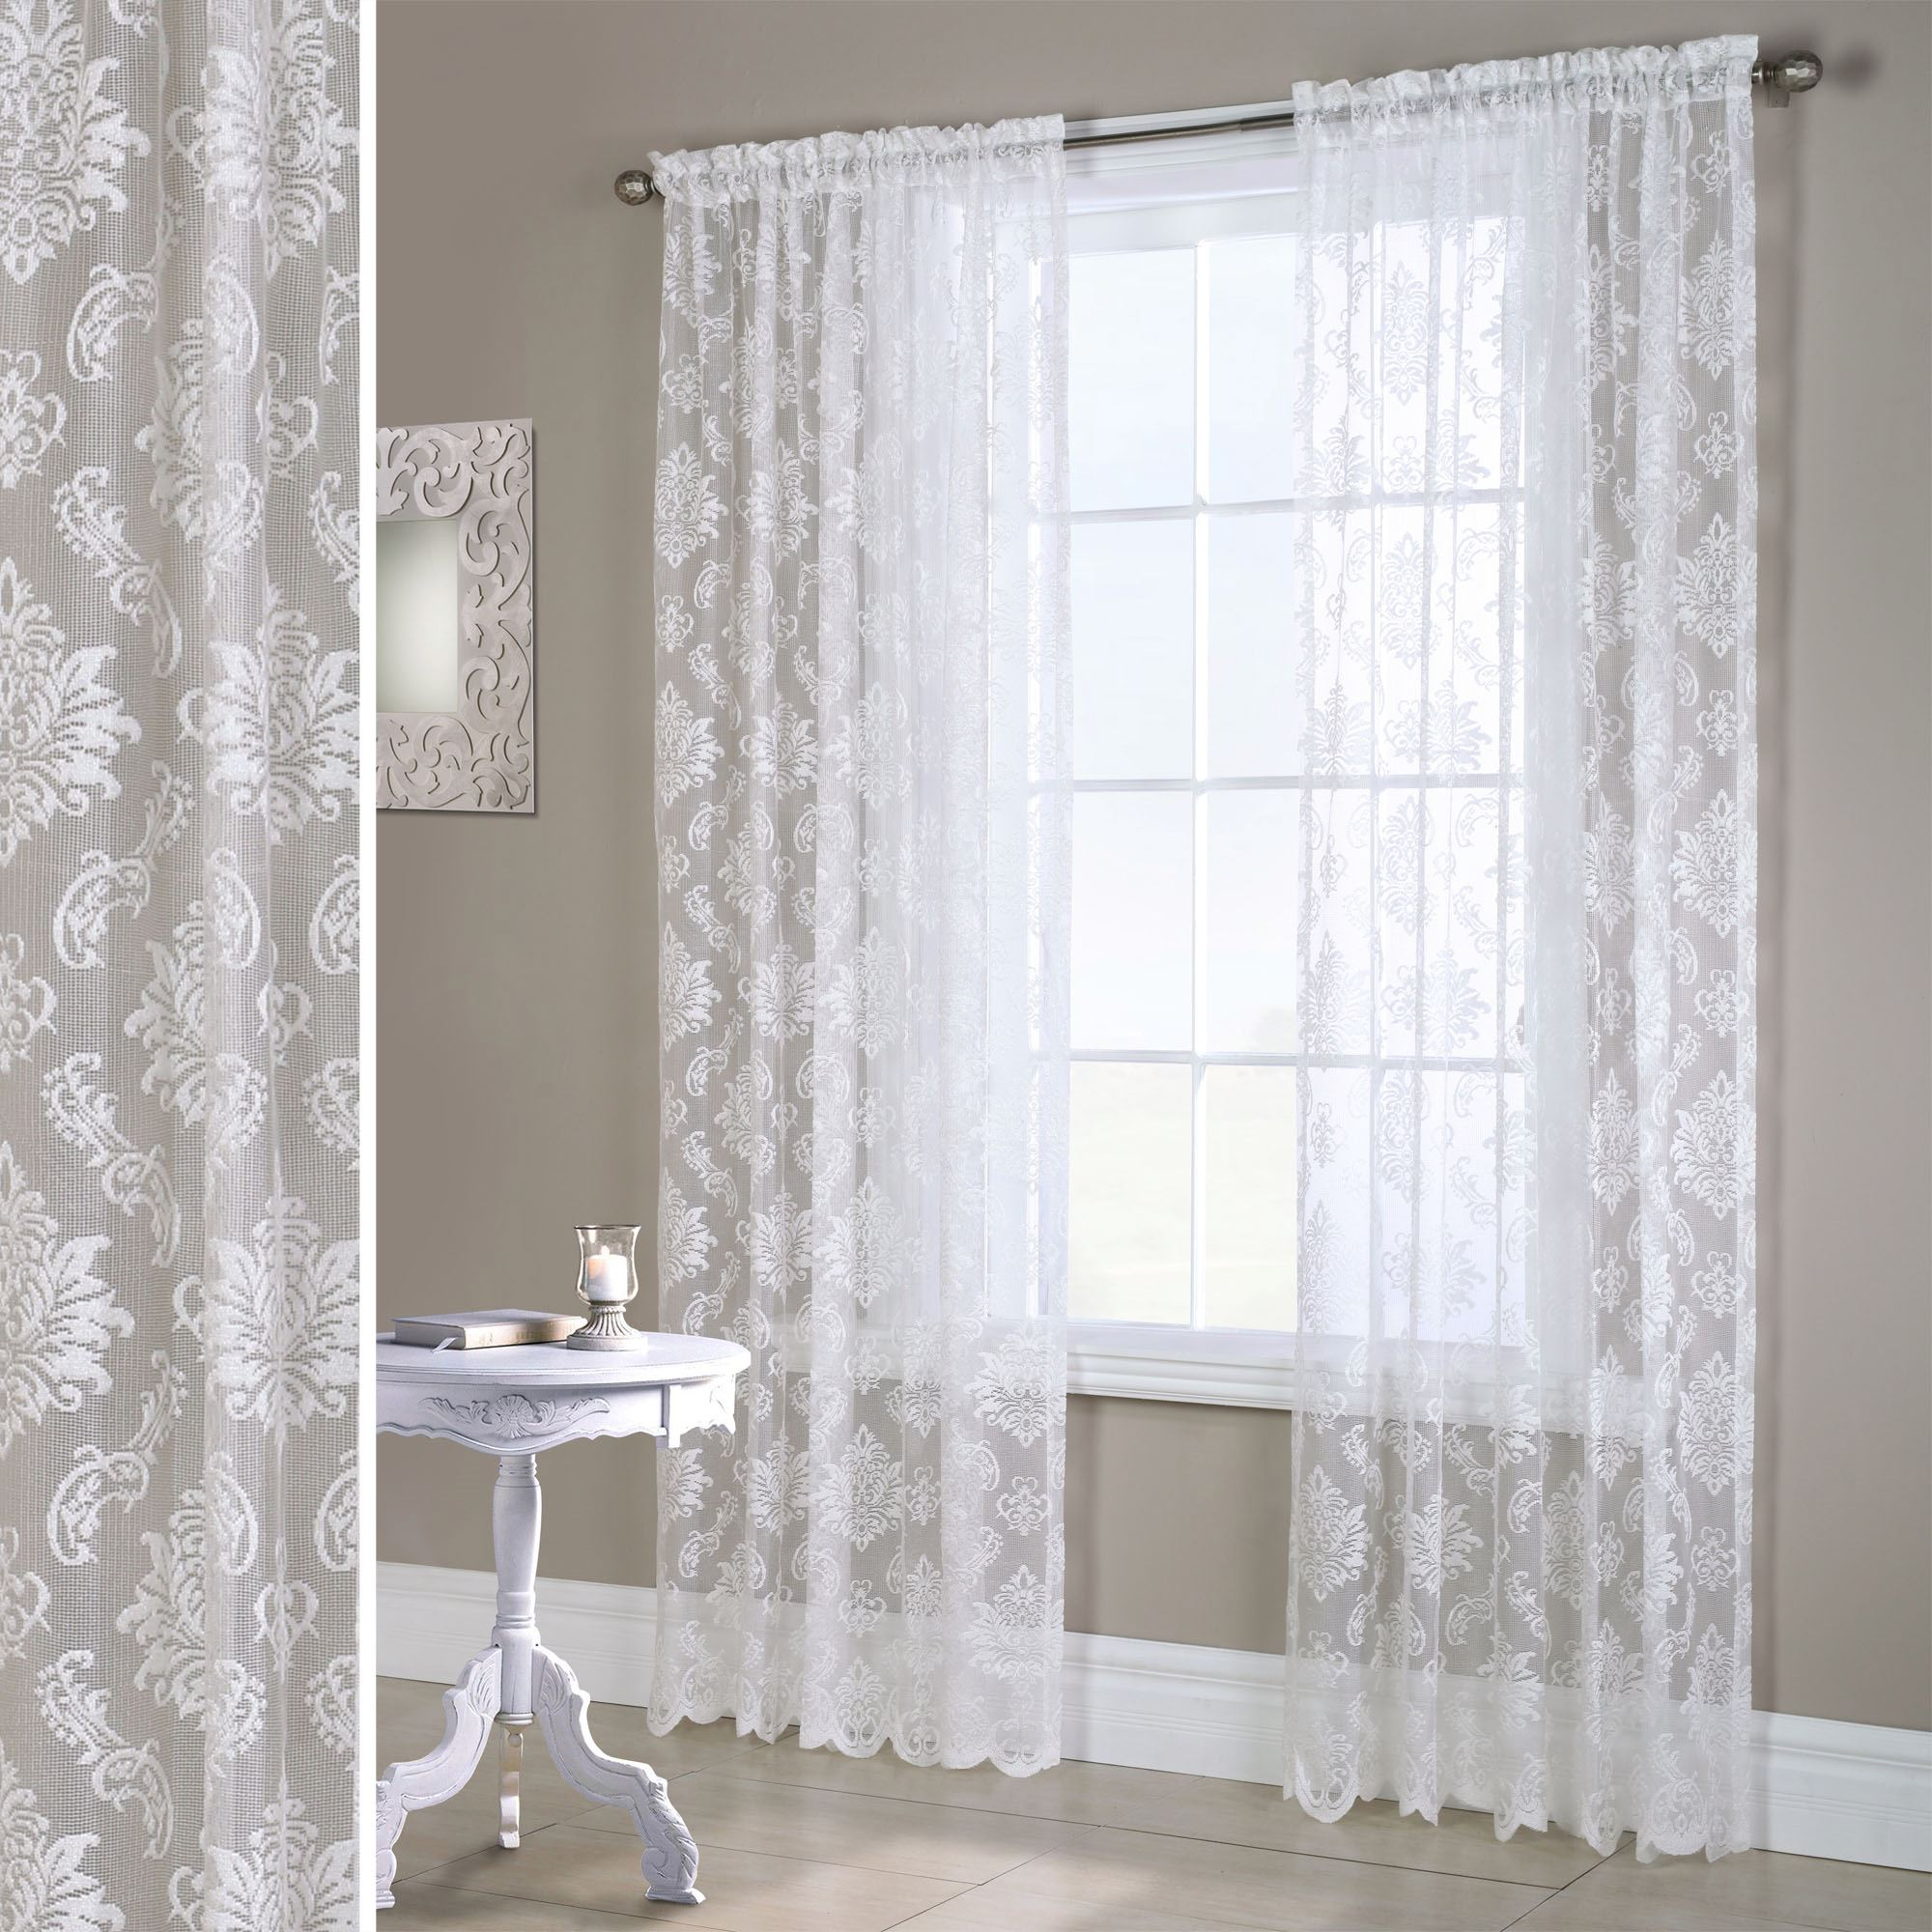 curtain orchid x ogee gianna by tailored j york treatment window pair v curtains new p damask queen